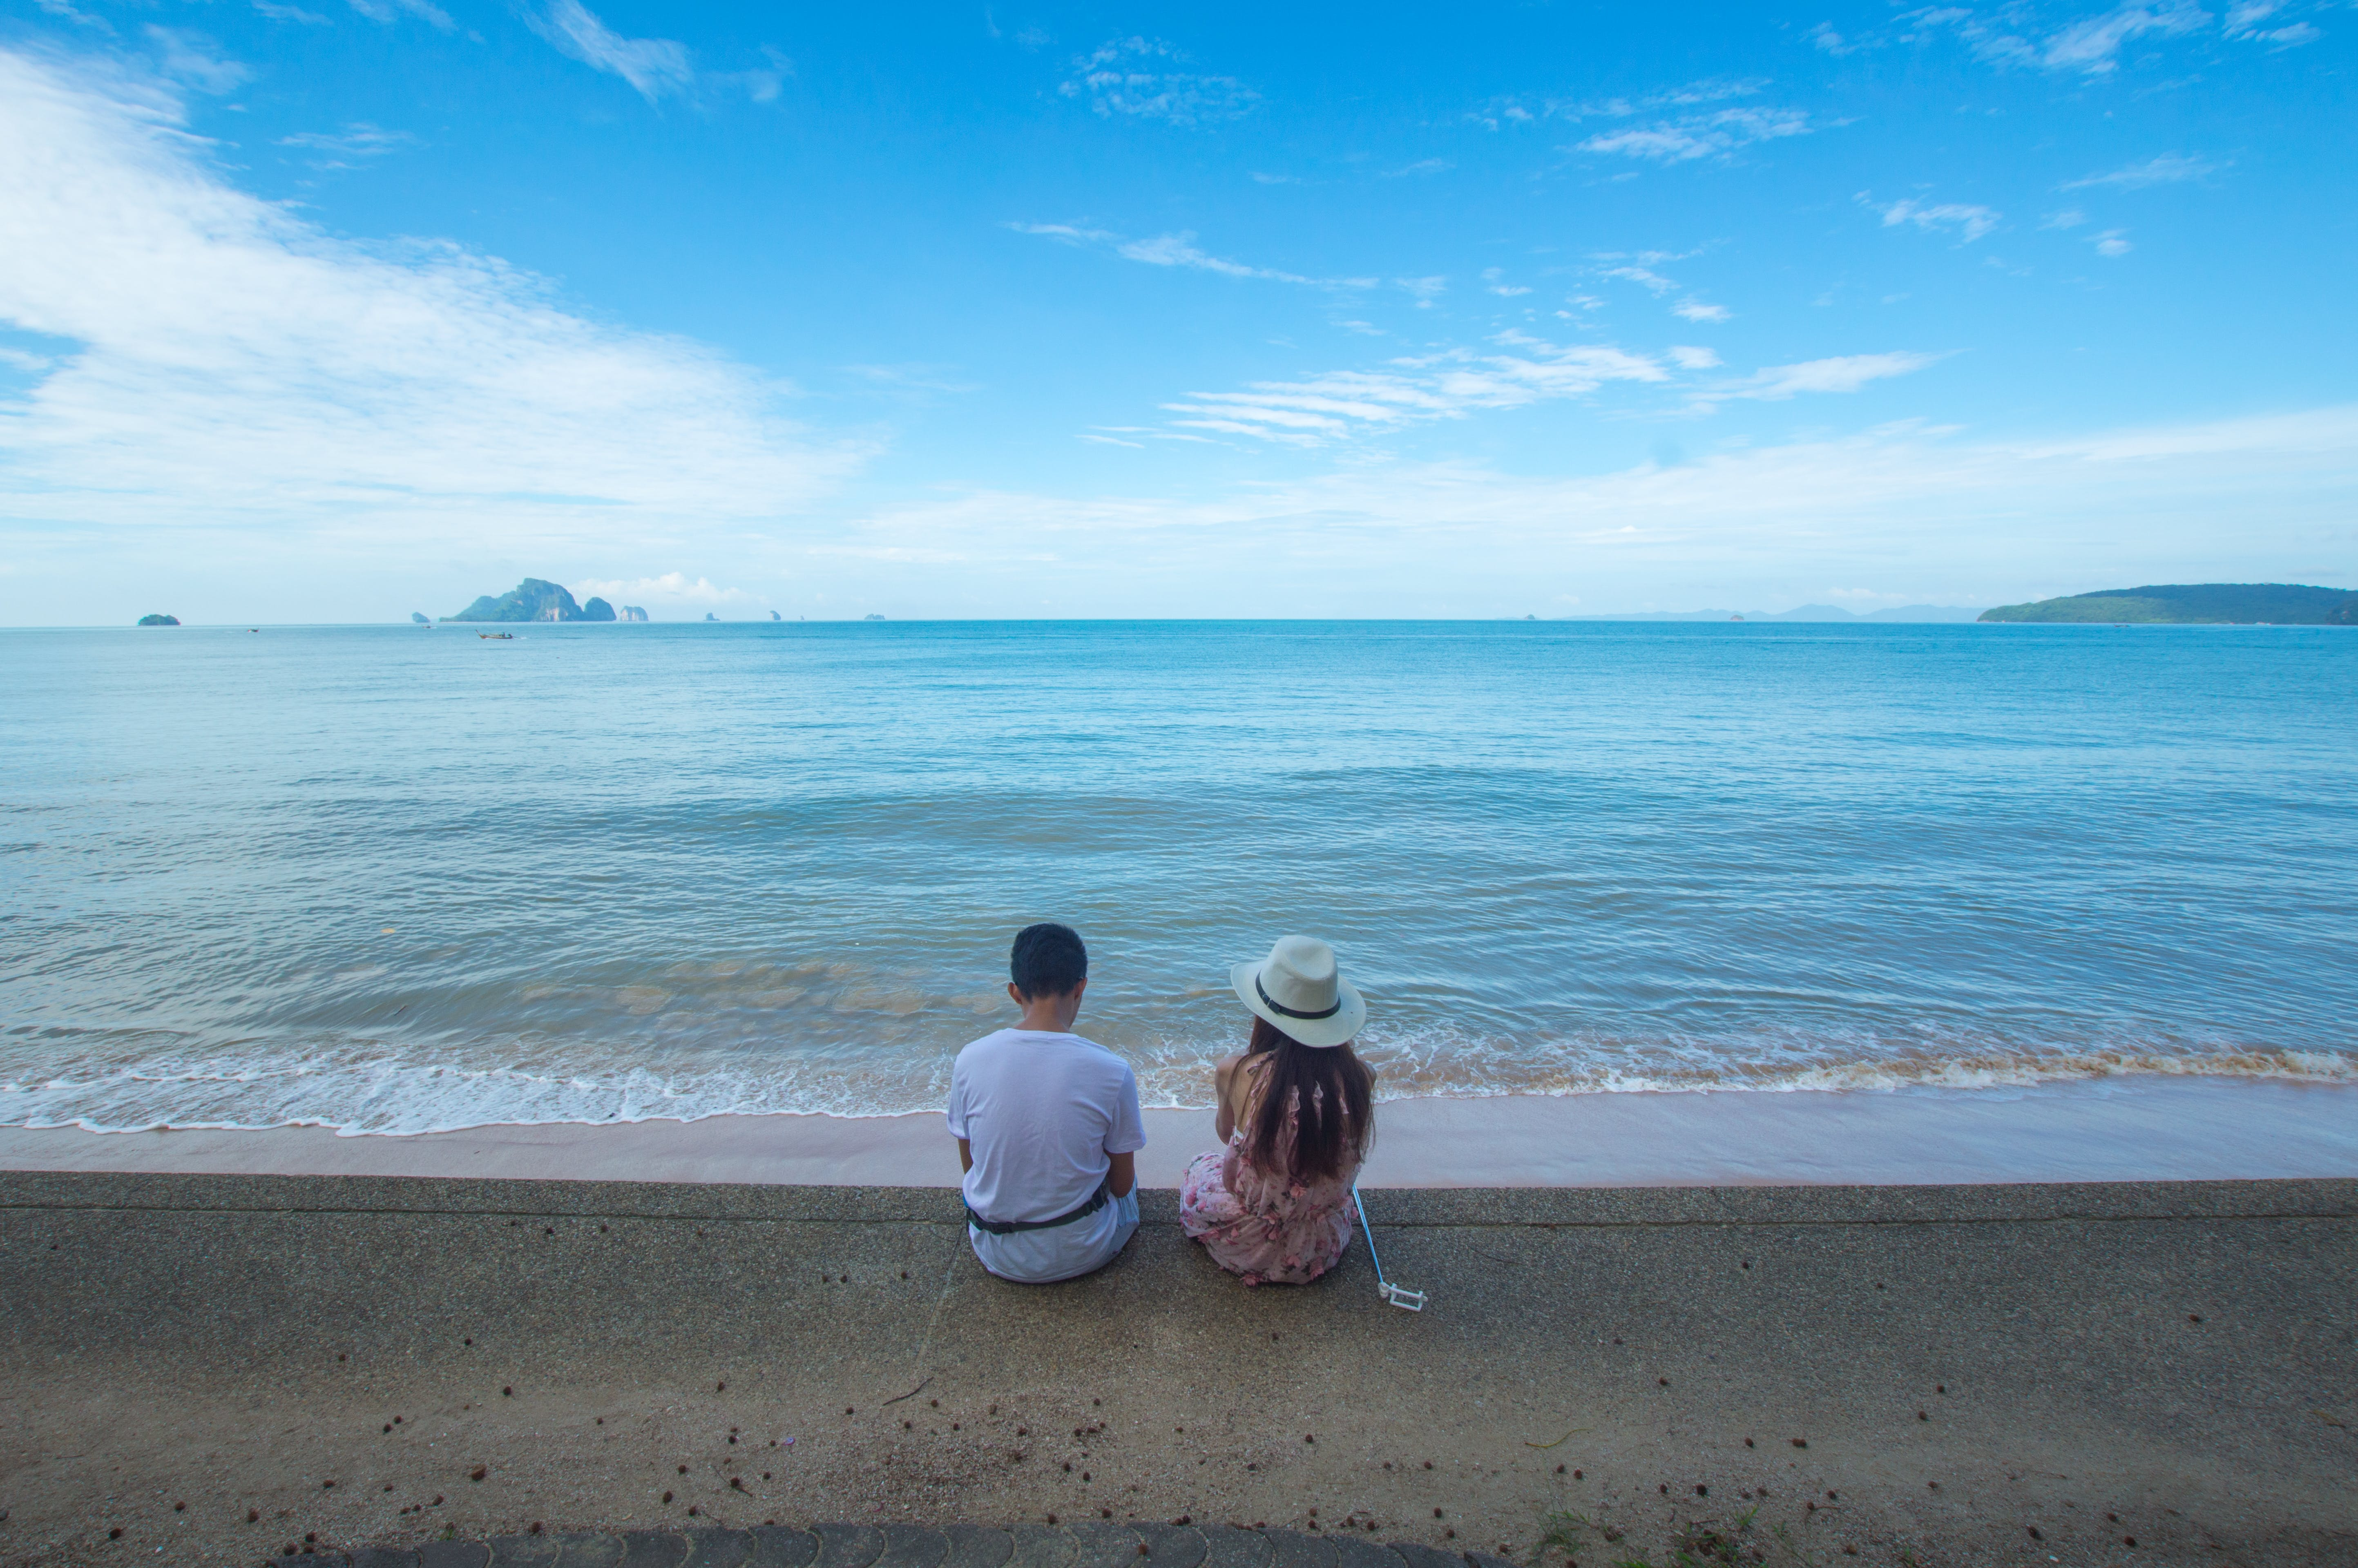 Man and Woman Sitting on Seashore